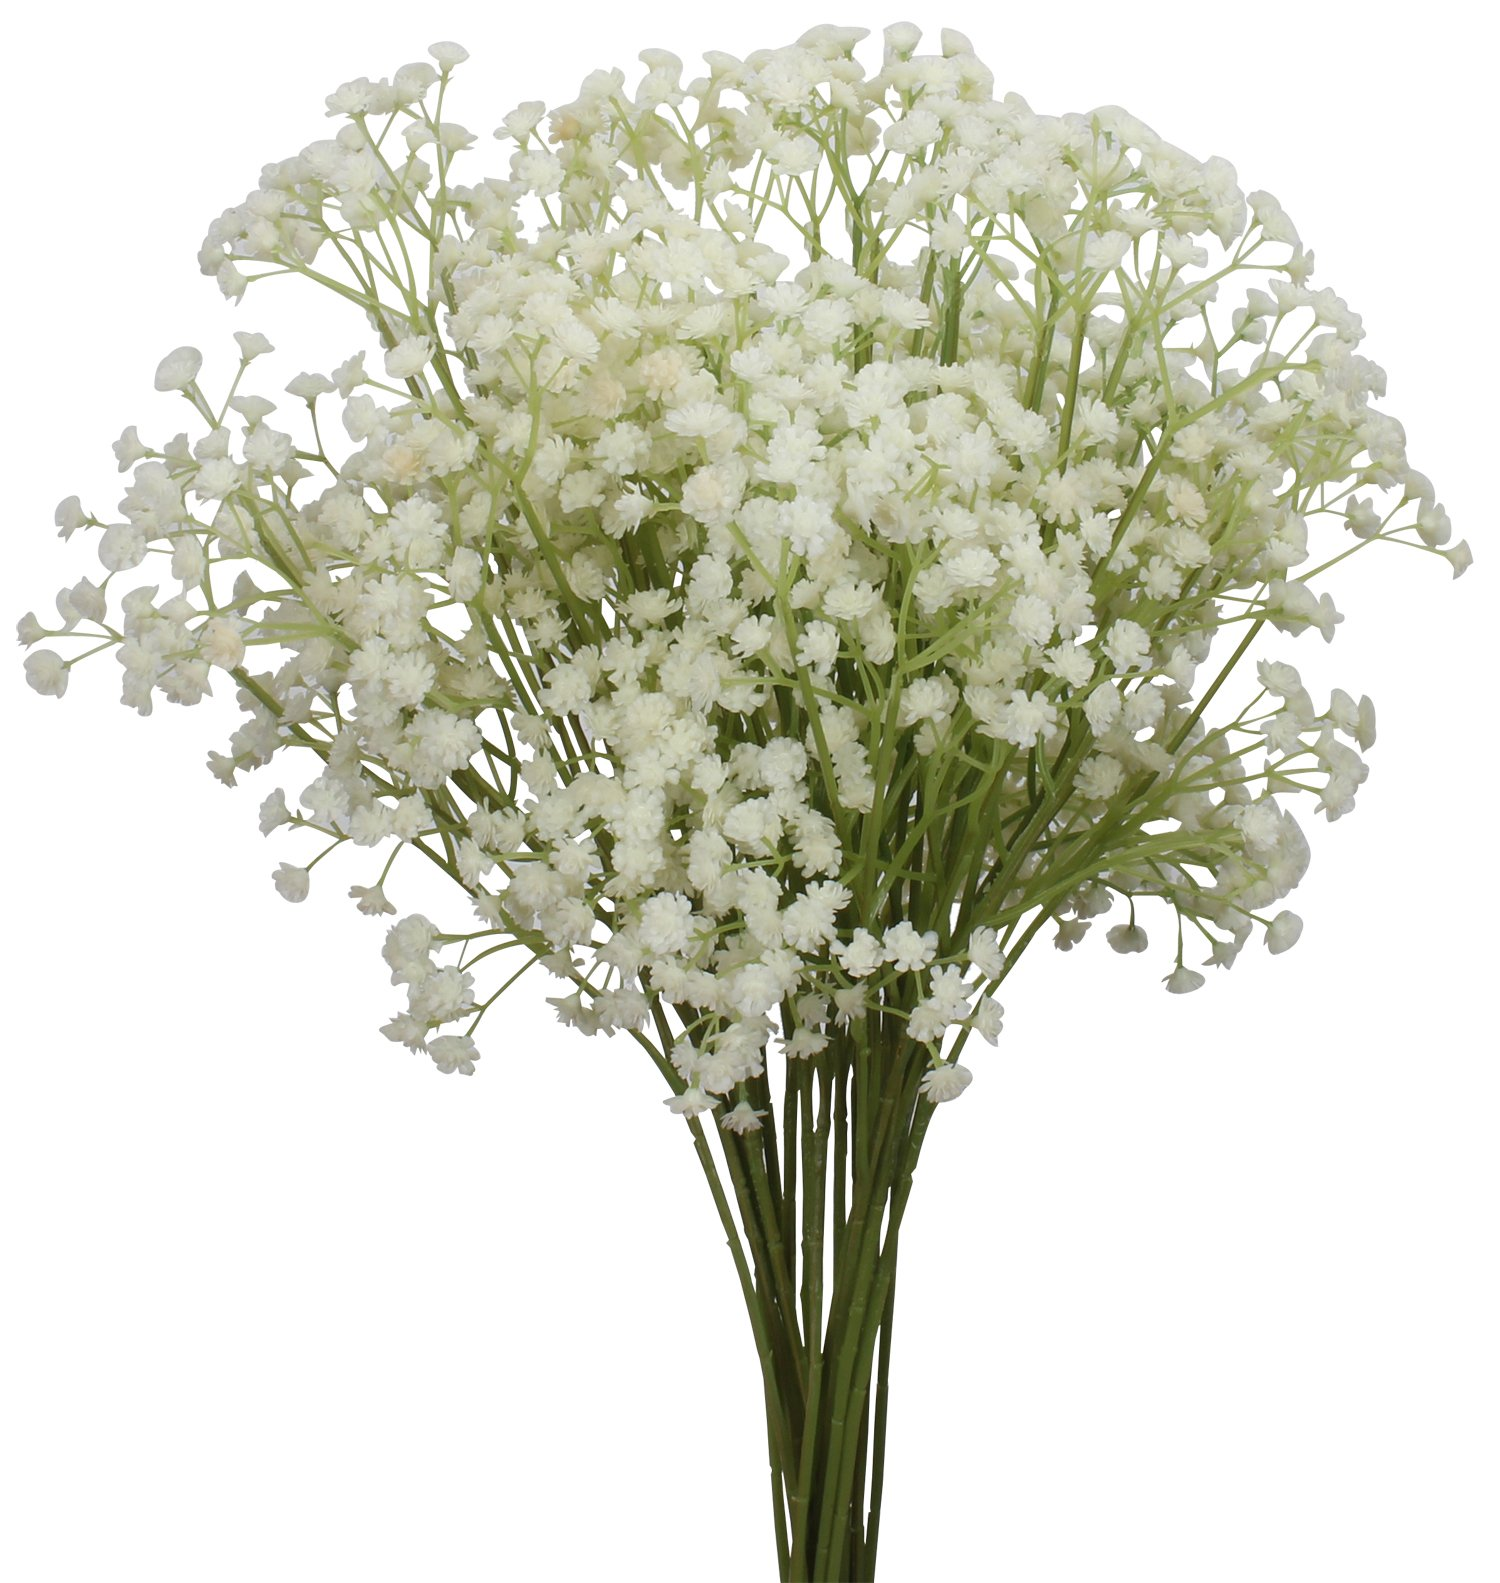 Duovlo 10pcs Babies Breath flowers 23.6'' Artificial Gypsophila Bouquets Real Touch Flowers For Wedding Home DIY Decor